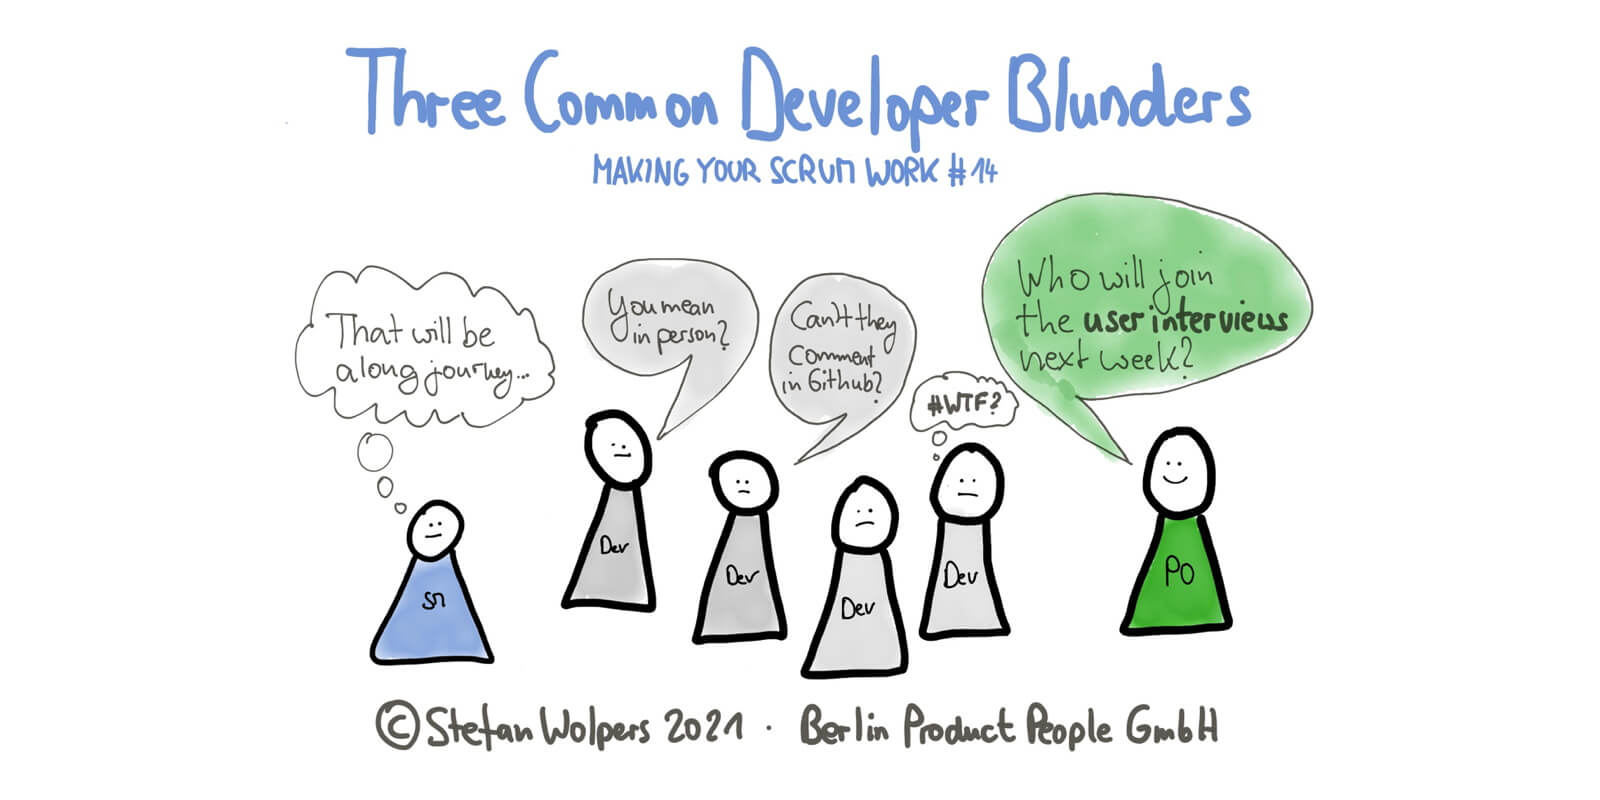 Three Common Developer Blunders in 5:05 Minutes—Making Your Scrum Work #14